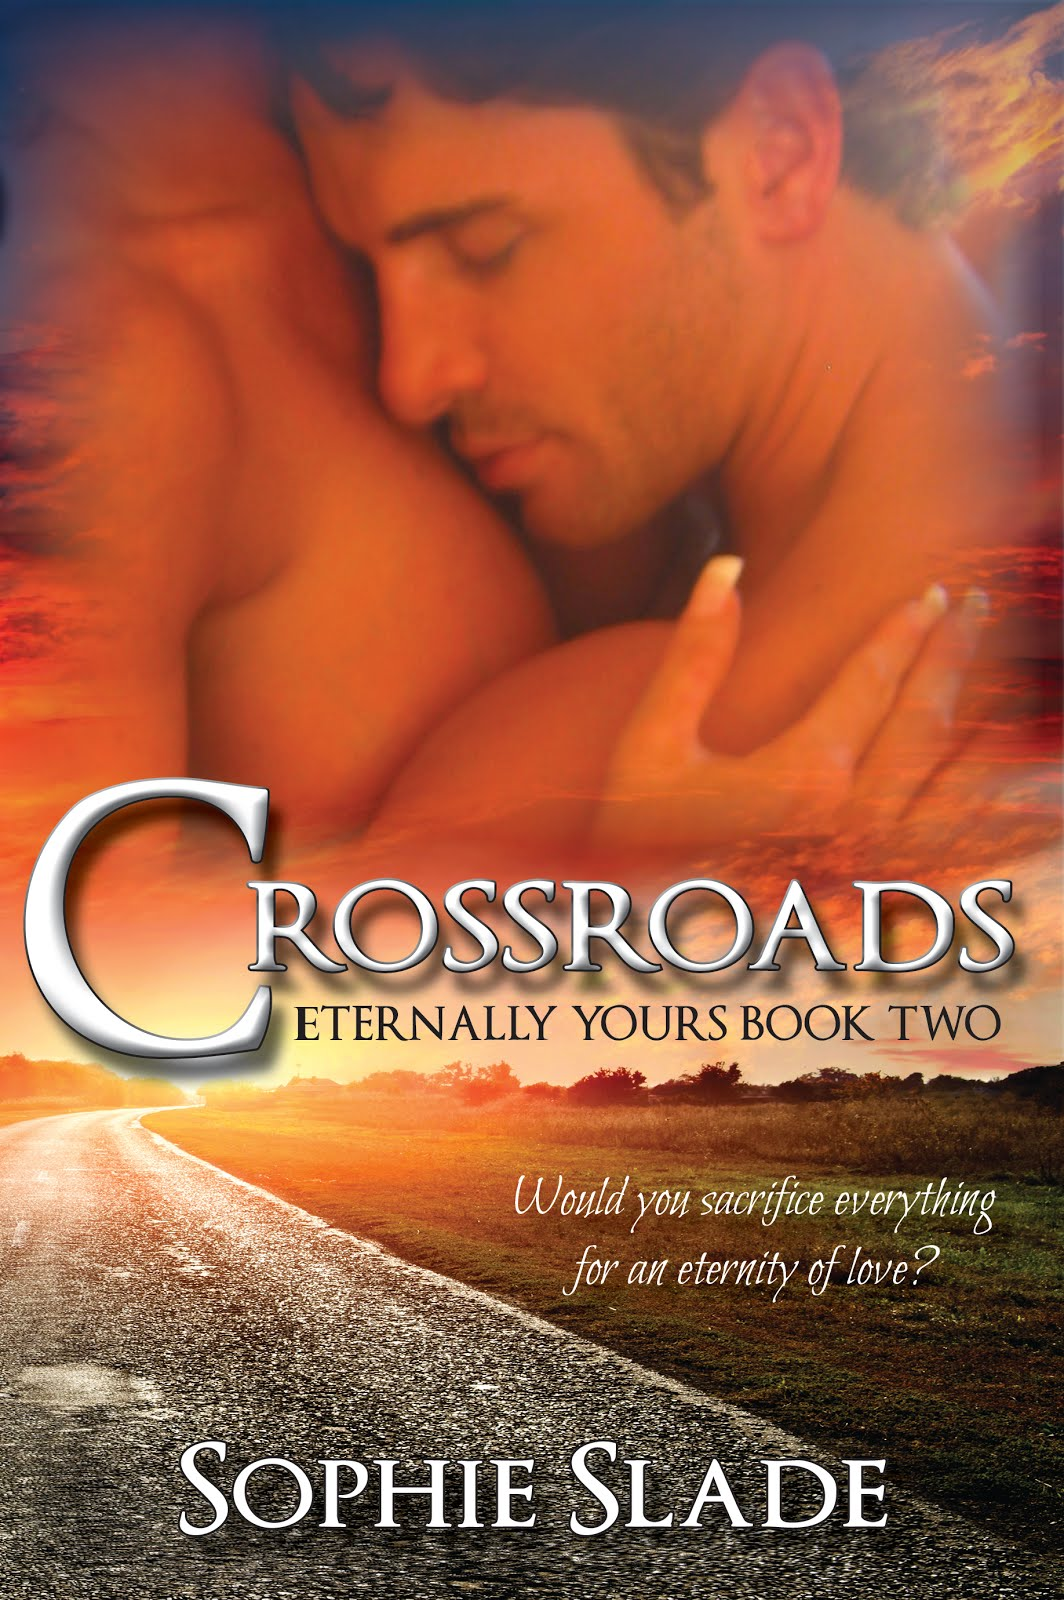 Crossroads (Eternally Yours Book Two)